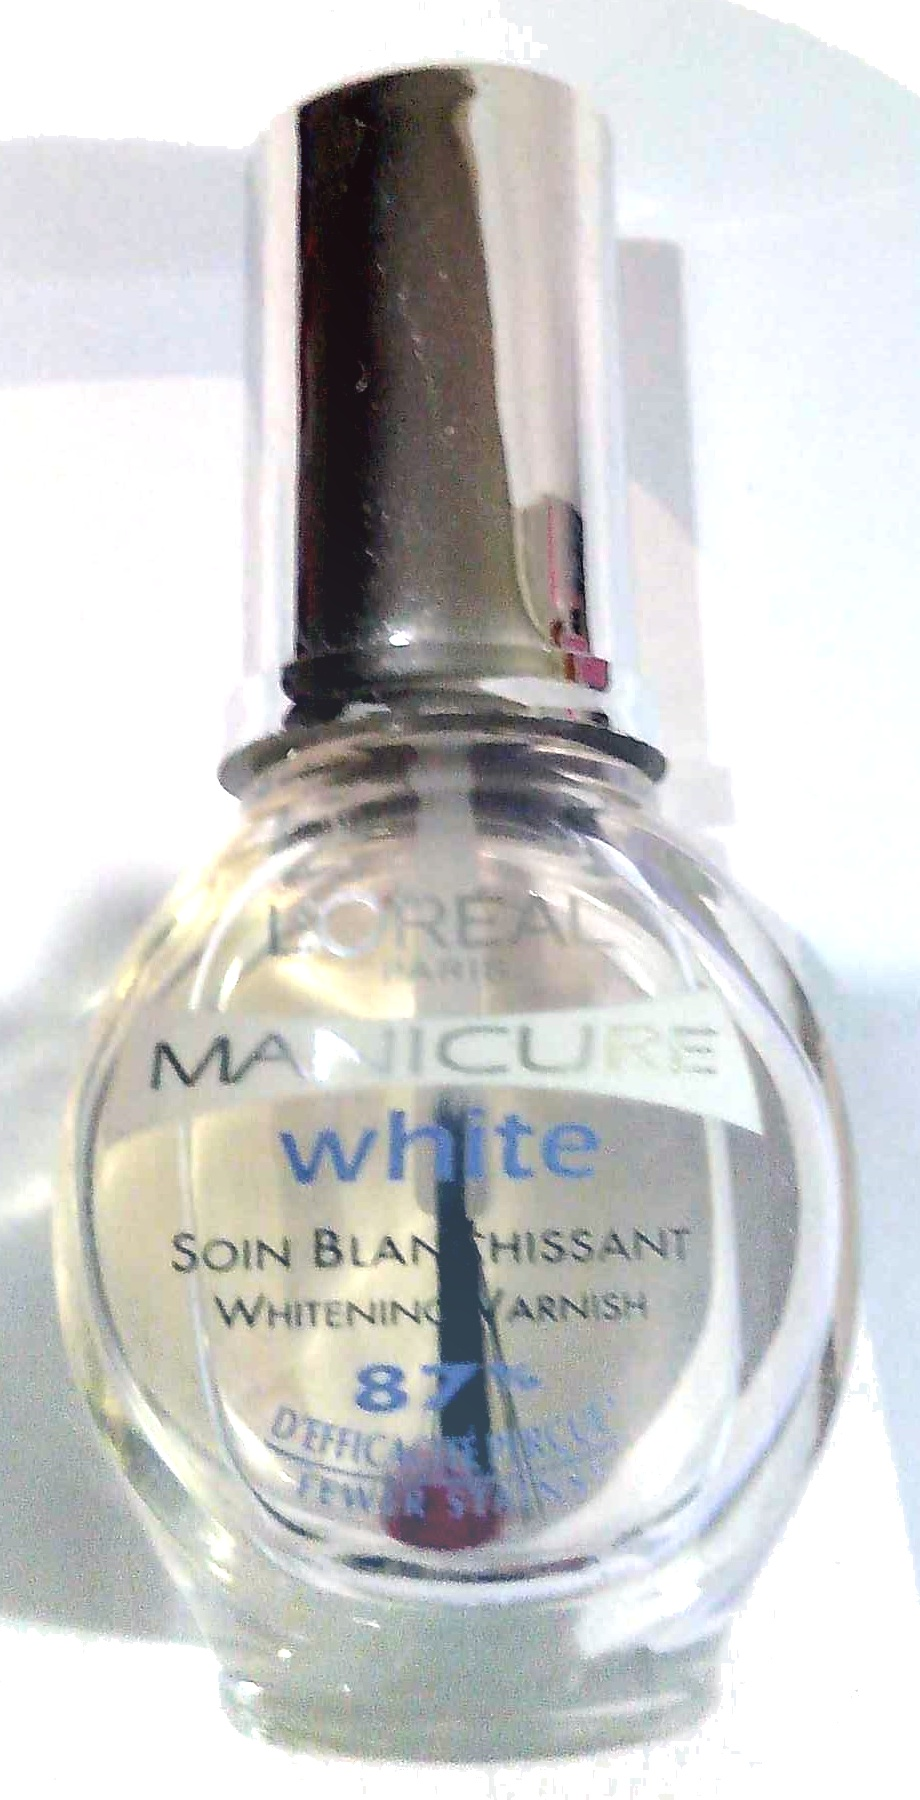 Manucure white soin blanchissant - Product - fr